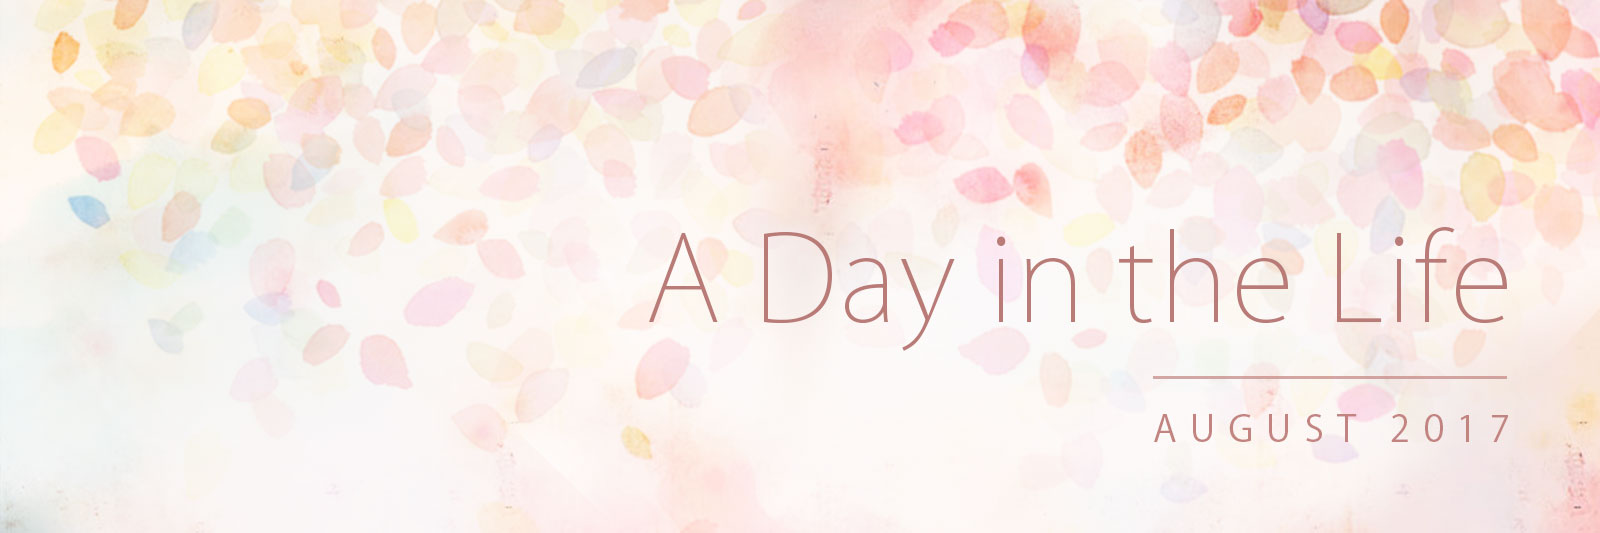 Banner for 'A Day in the Life': August 2017